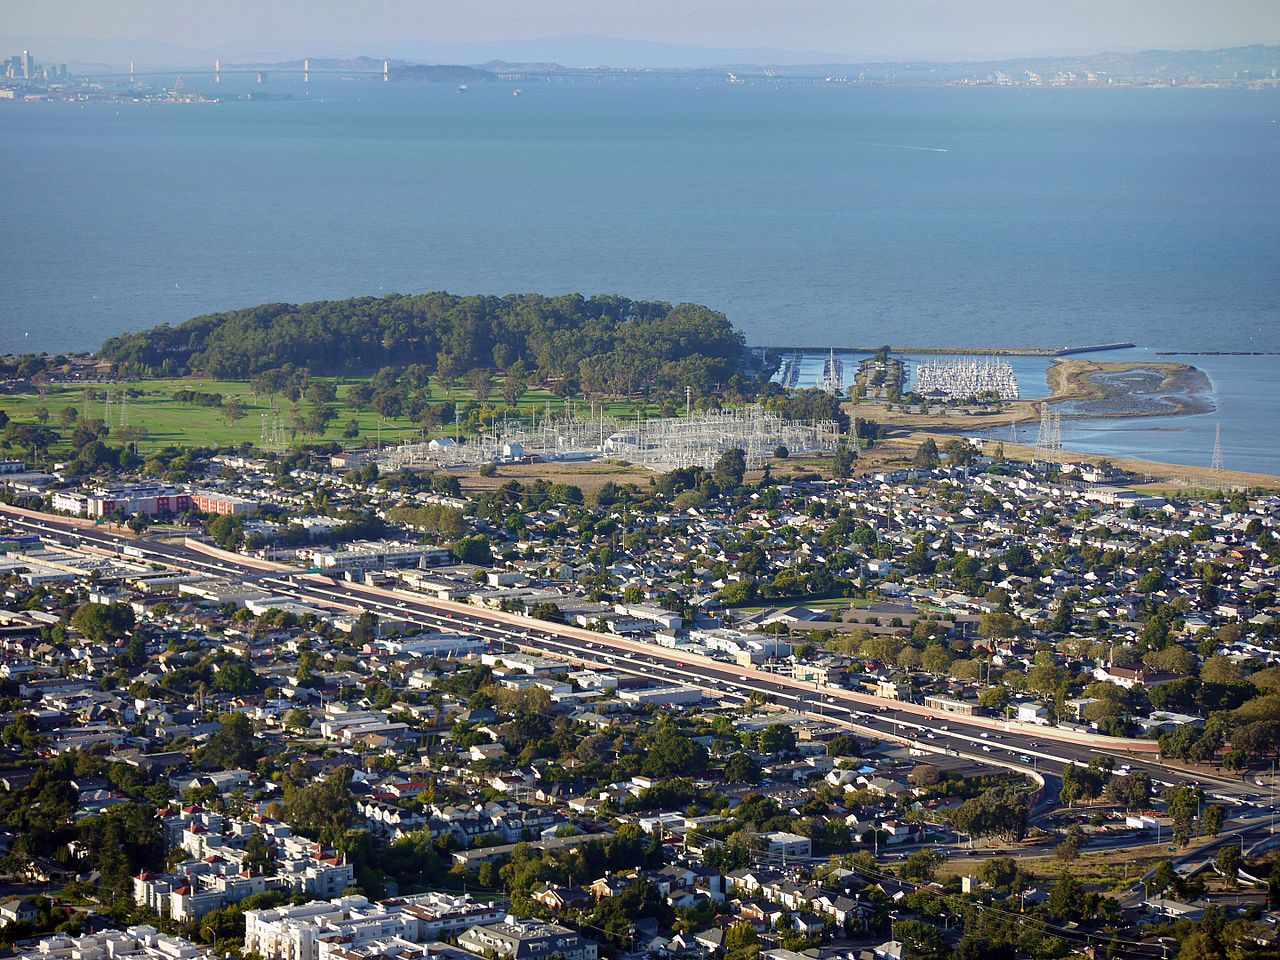 An Aerial View of San Mateo.